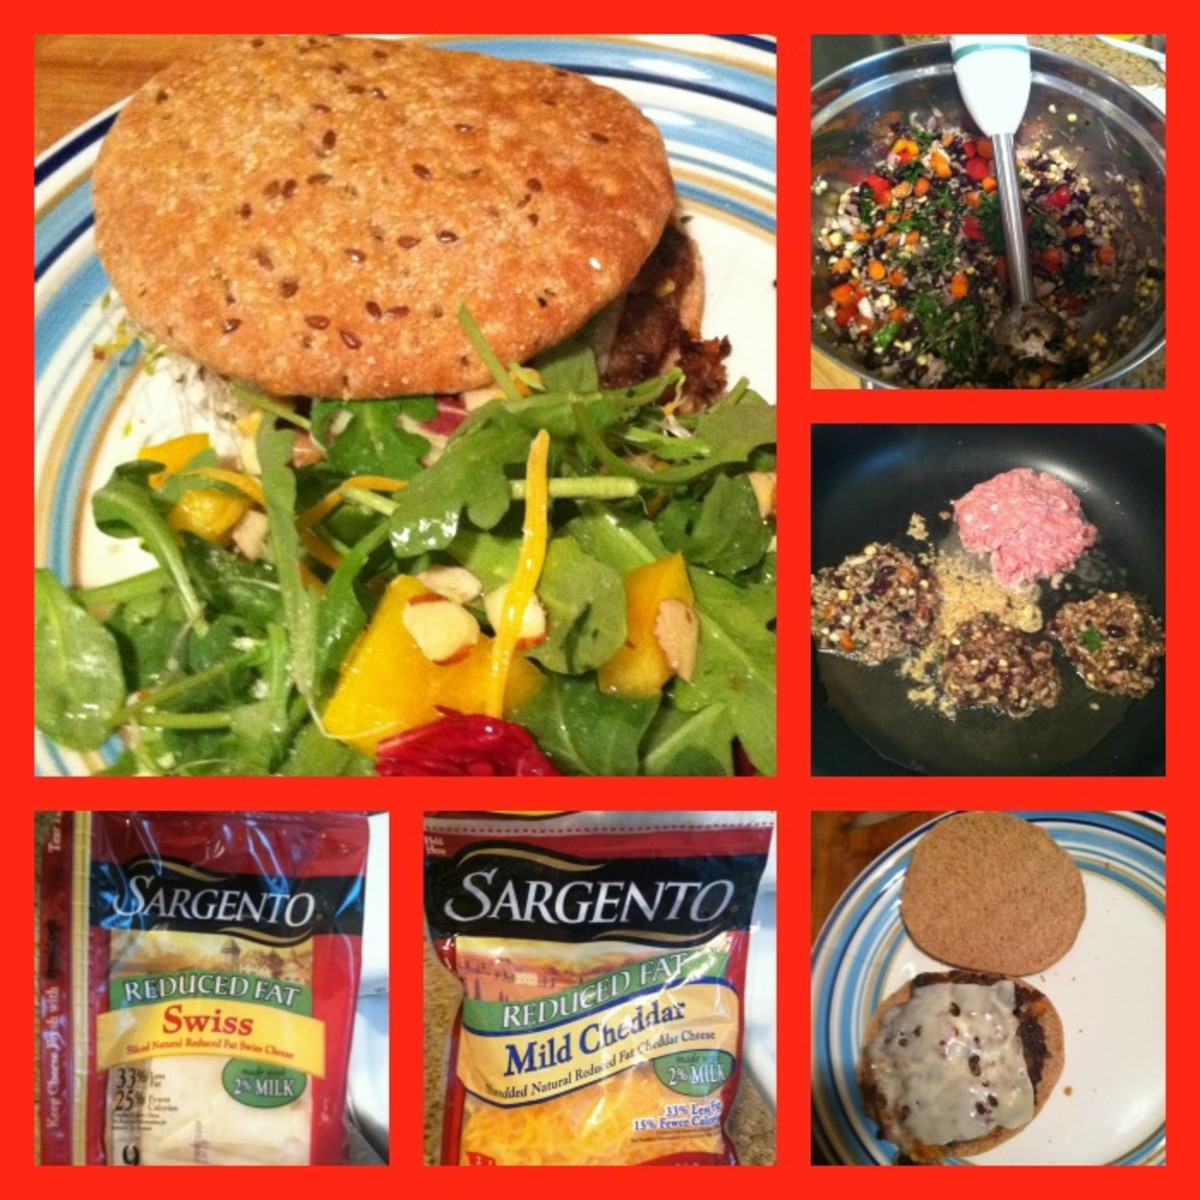 Homemade Vegetable Burgers with Sargento Cheese